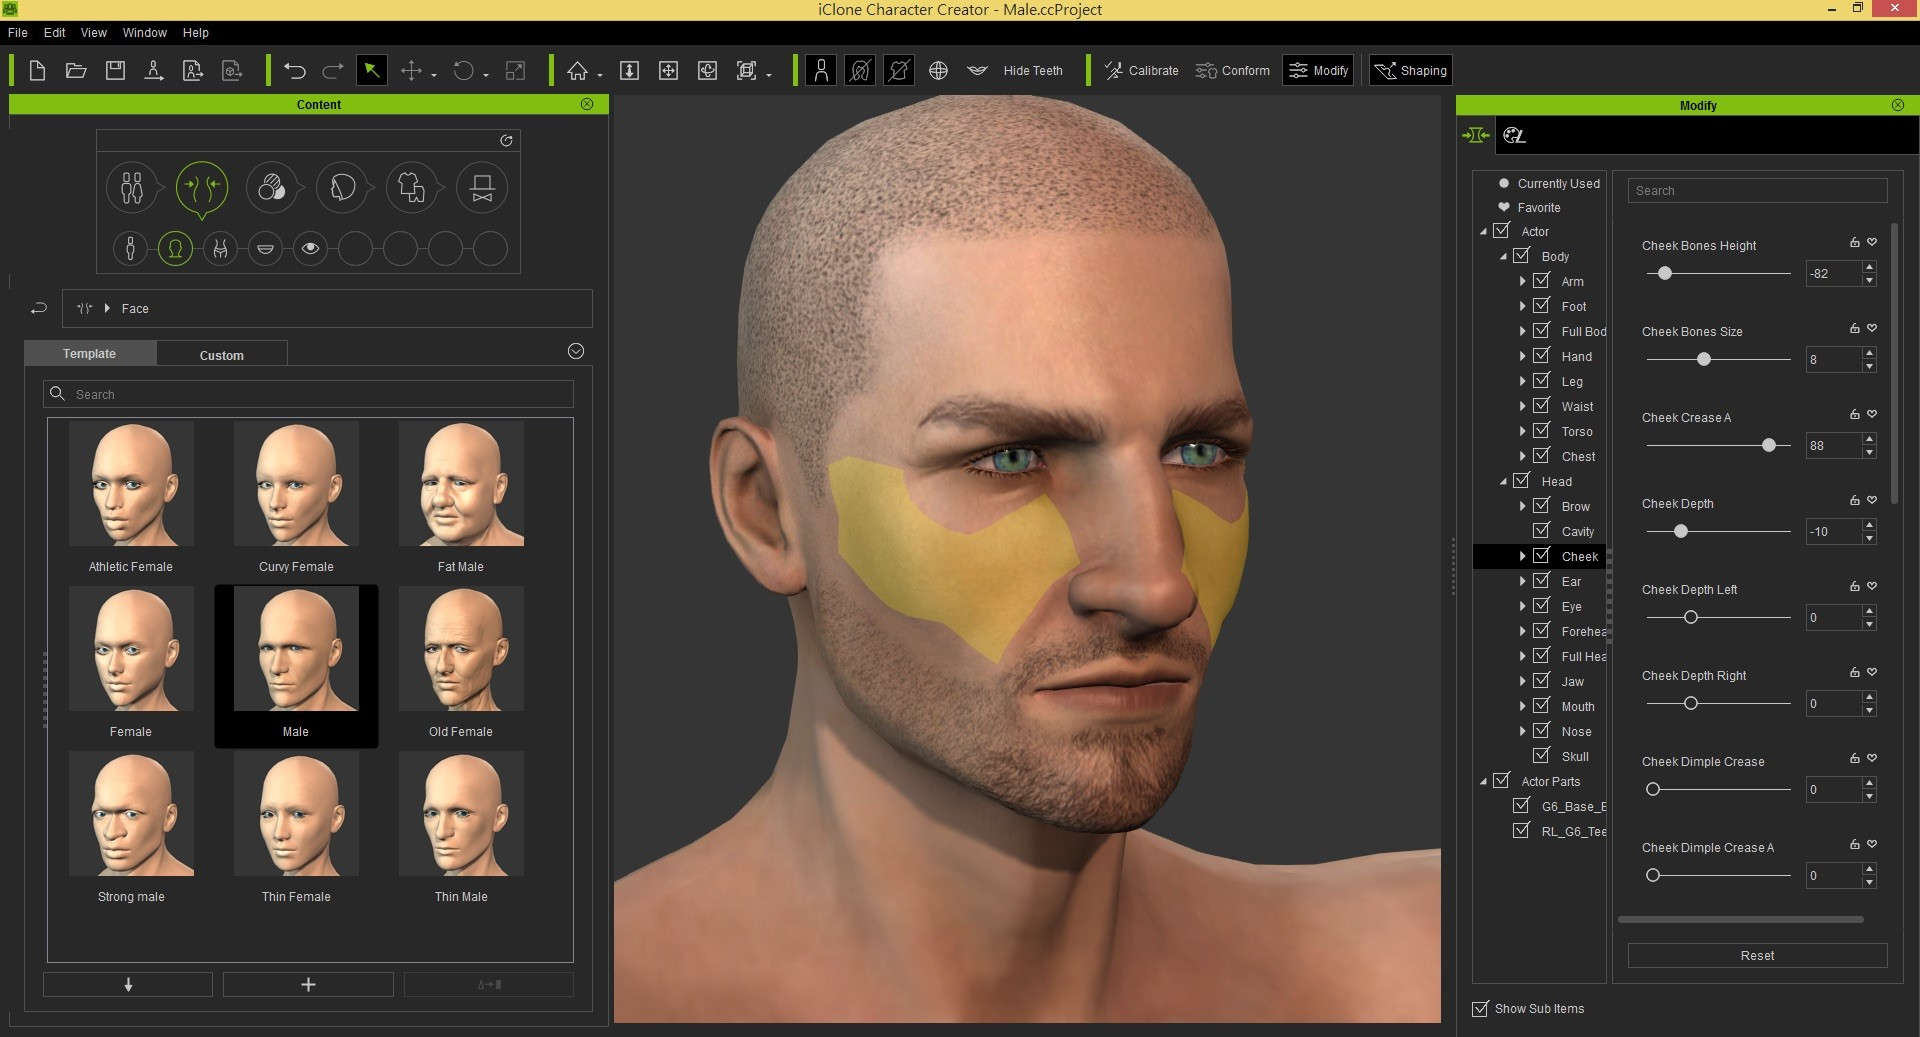 Update was made in jan 2017 the list of alternatives was updated jul 2018 its possible to update the information on iclone character creator or